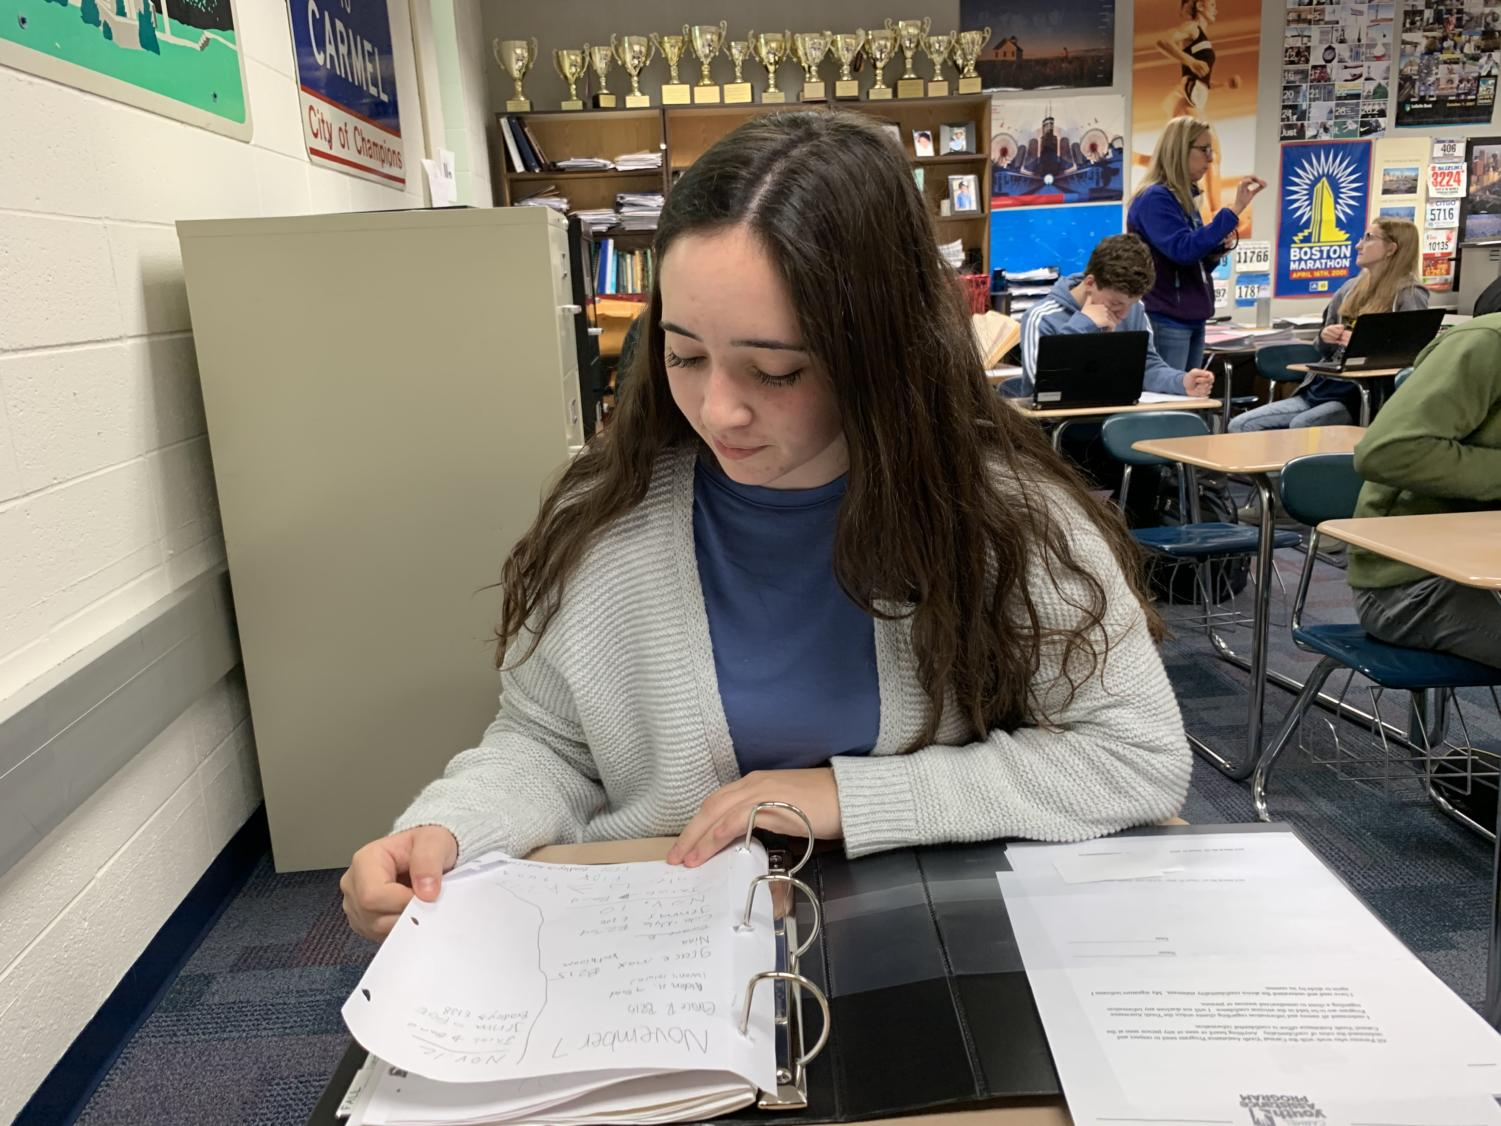 Nina Metaxas, Carmel Mayor's Youth Council (CMYC) vice president and senior, looks at her binder during SRT. Metaxas said CMYC is working hard to plan their holiday events, Toy Drive and Kid's Booth, both of which will take place during the first week of December.